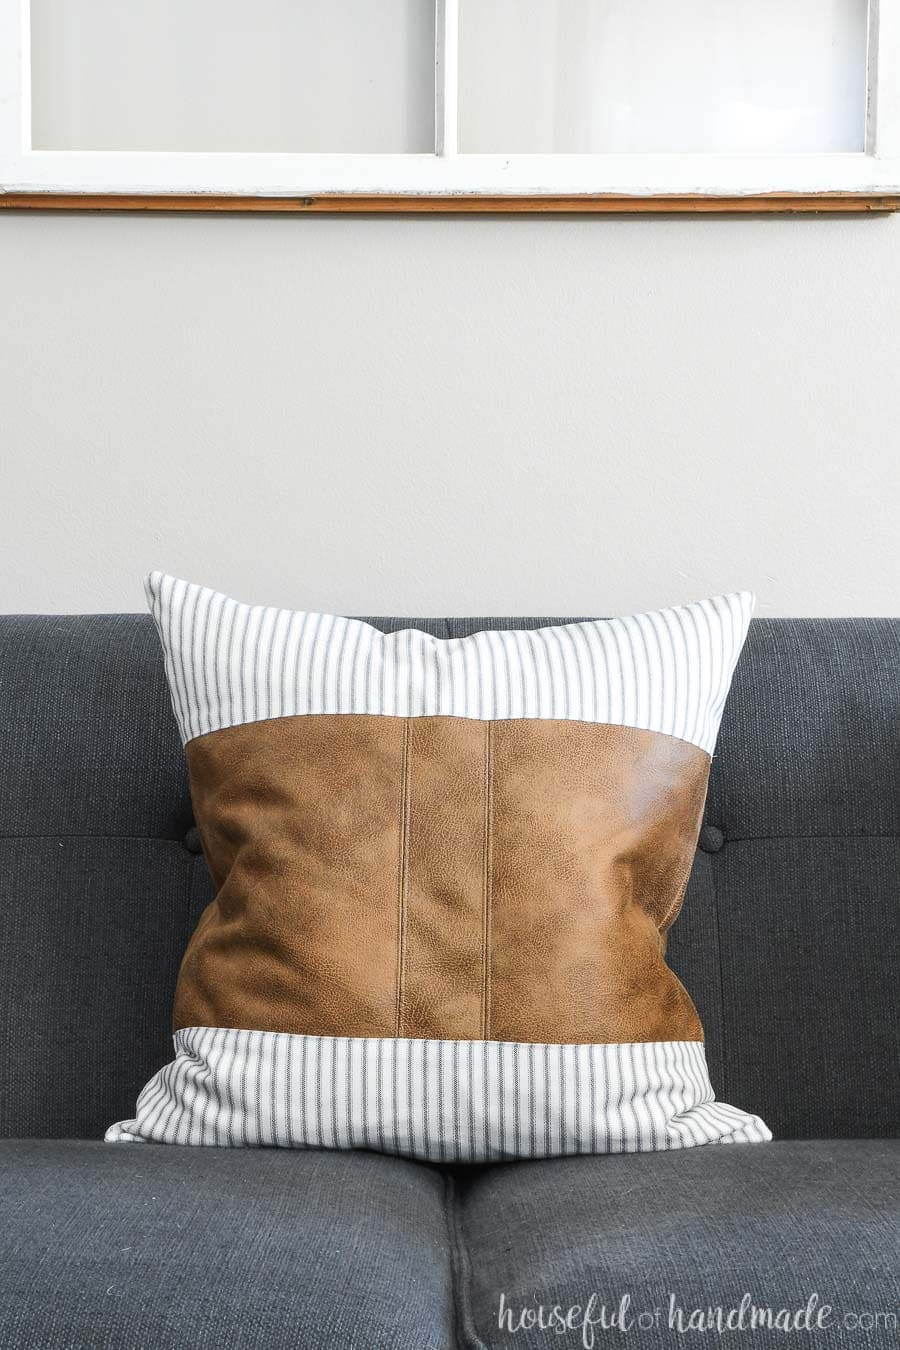 Leather pillow cover with center stripe and ticking fabric on a navy sofa.